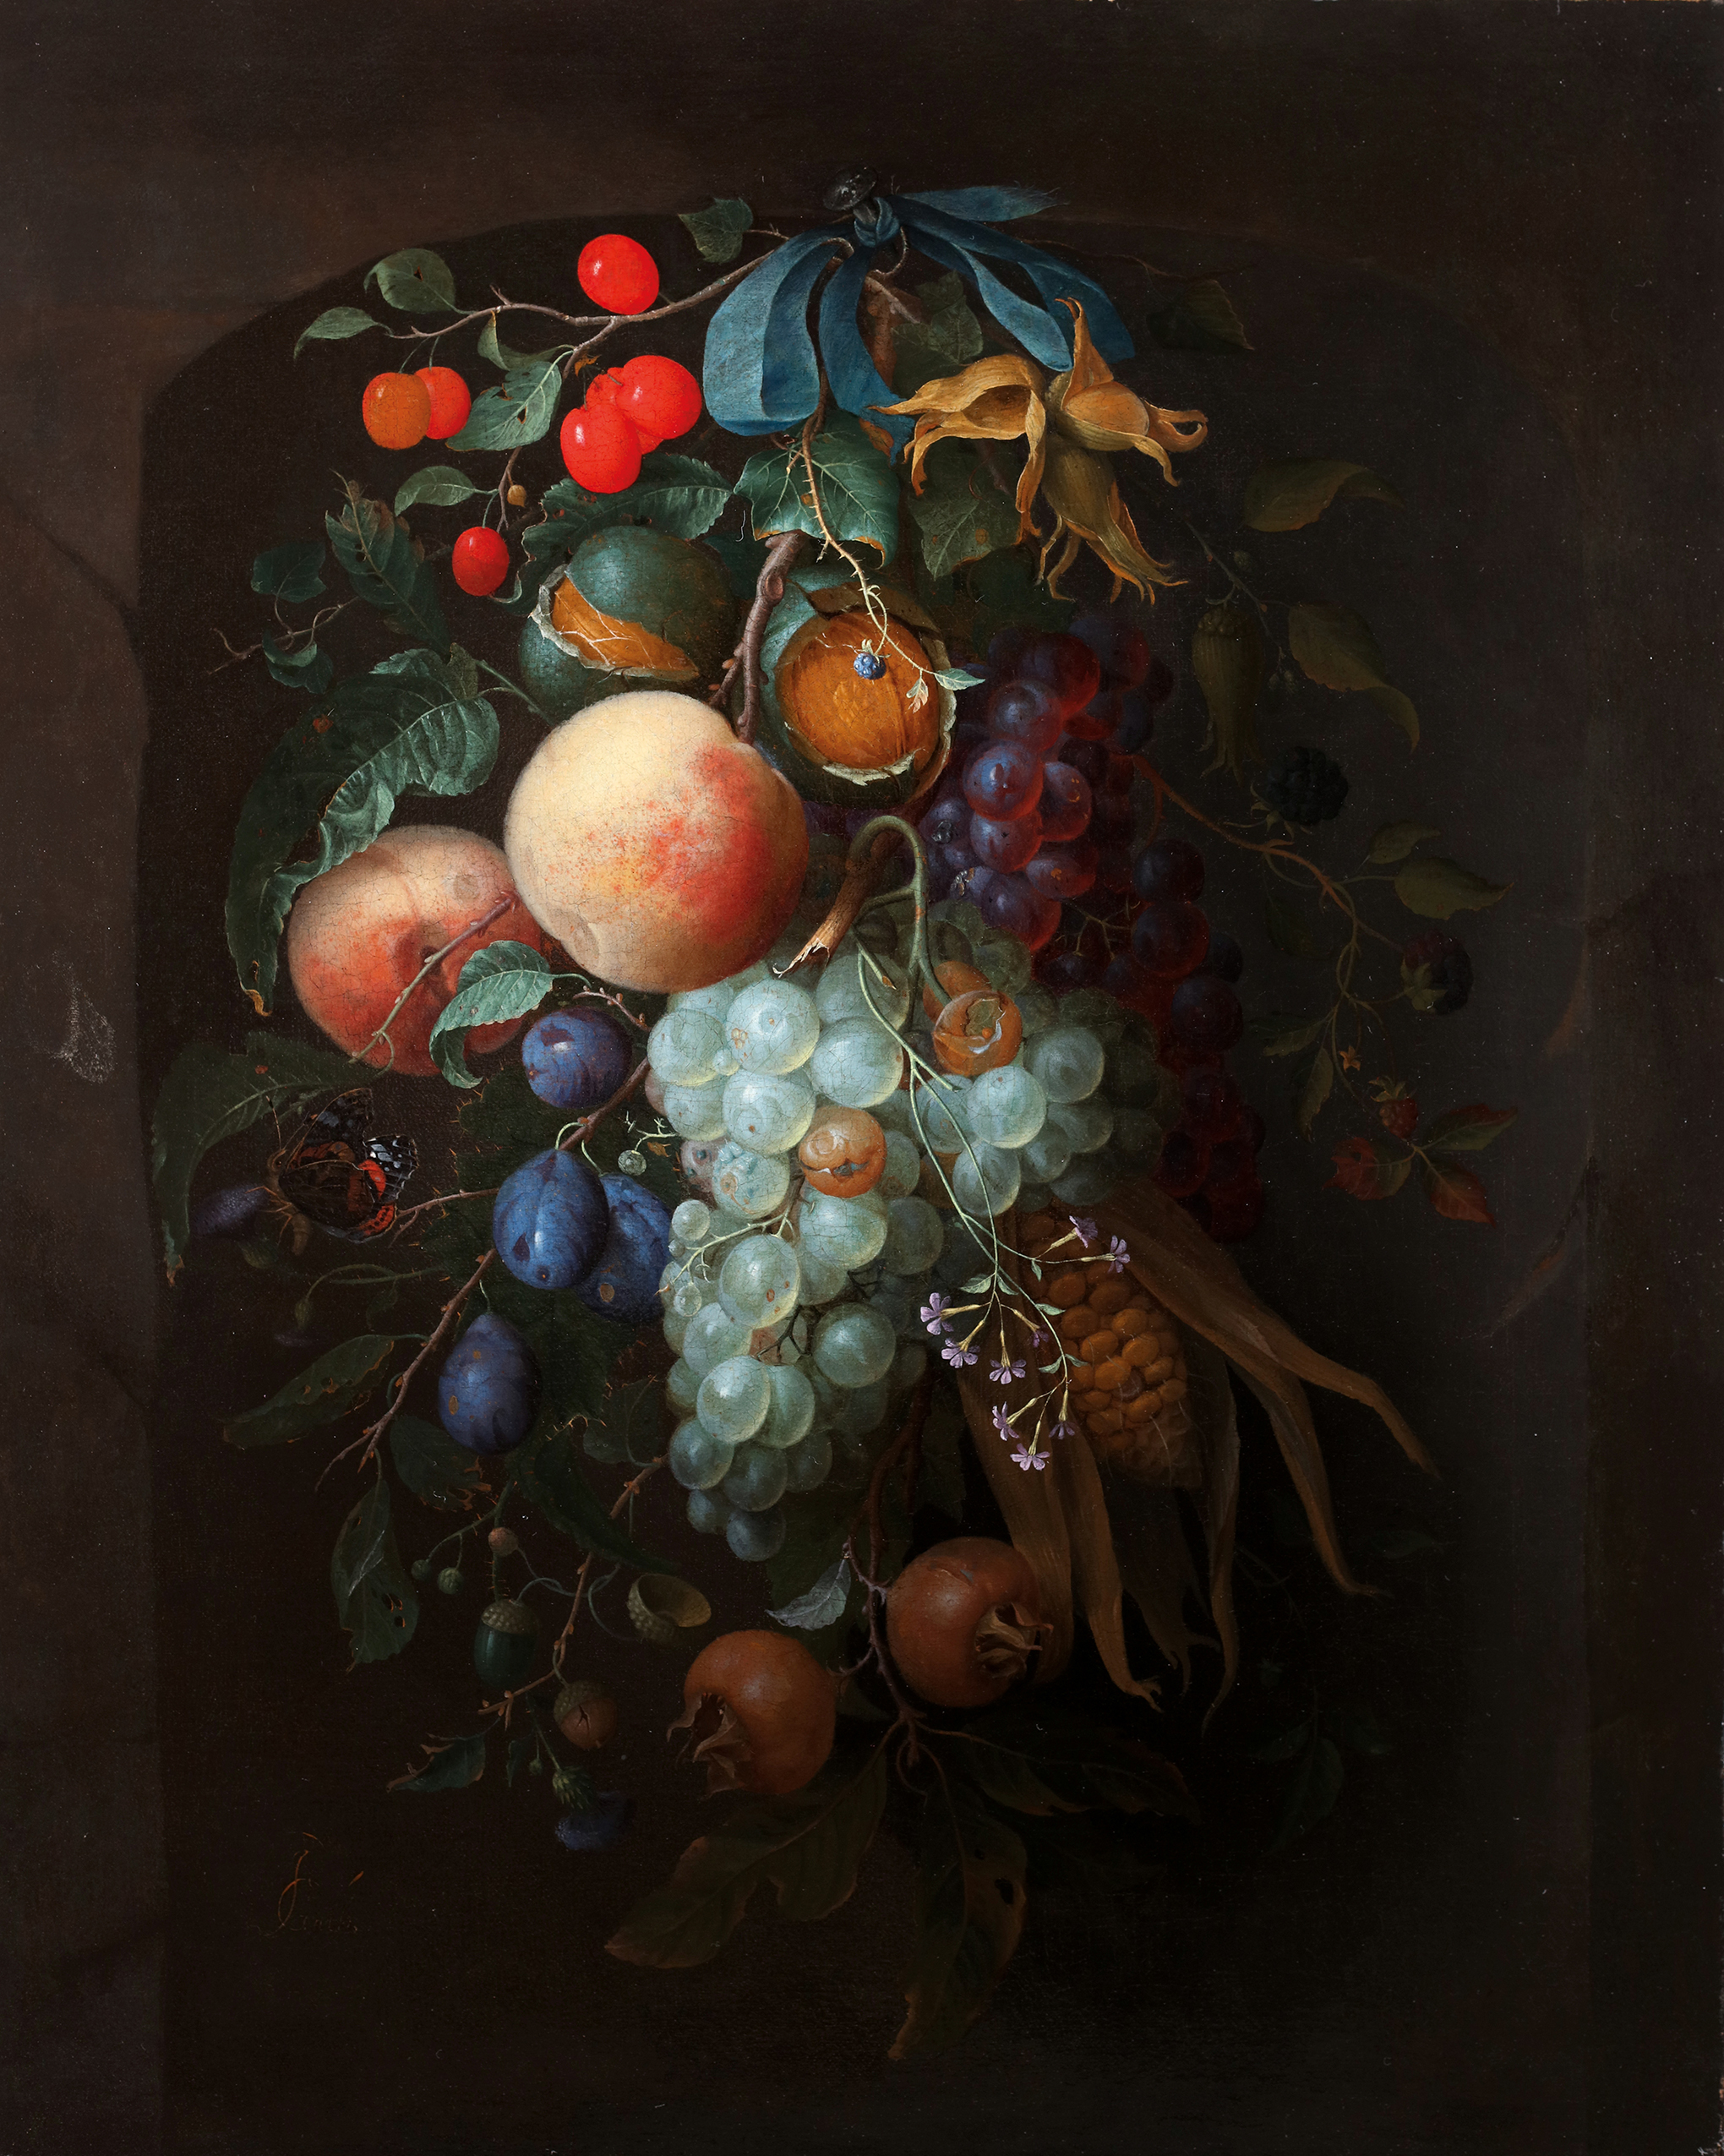 A hanging garland of fruit